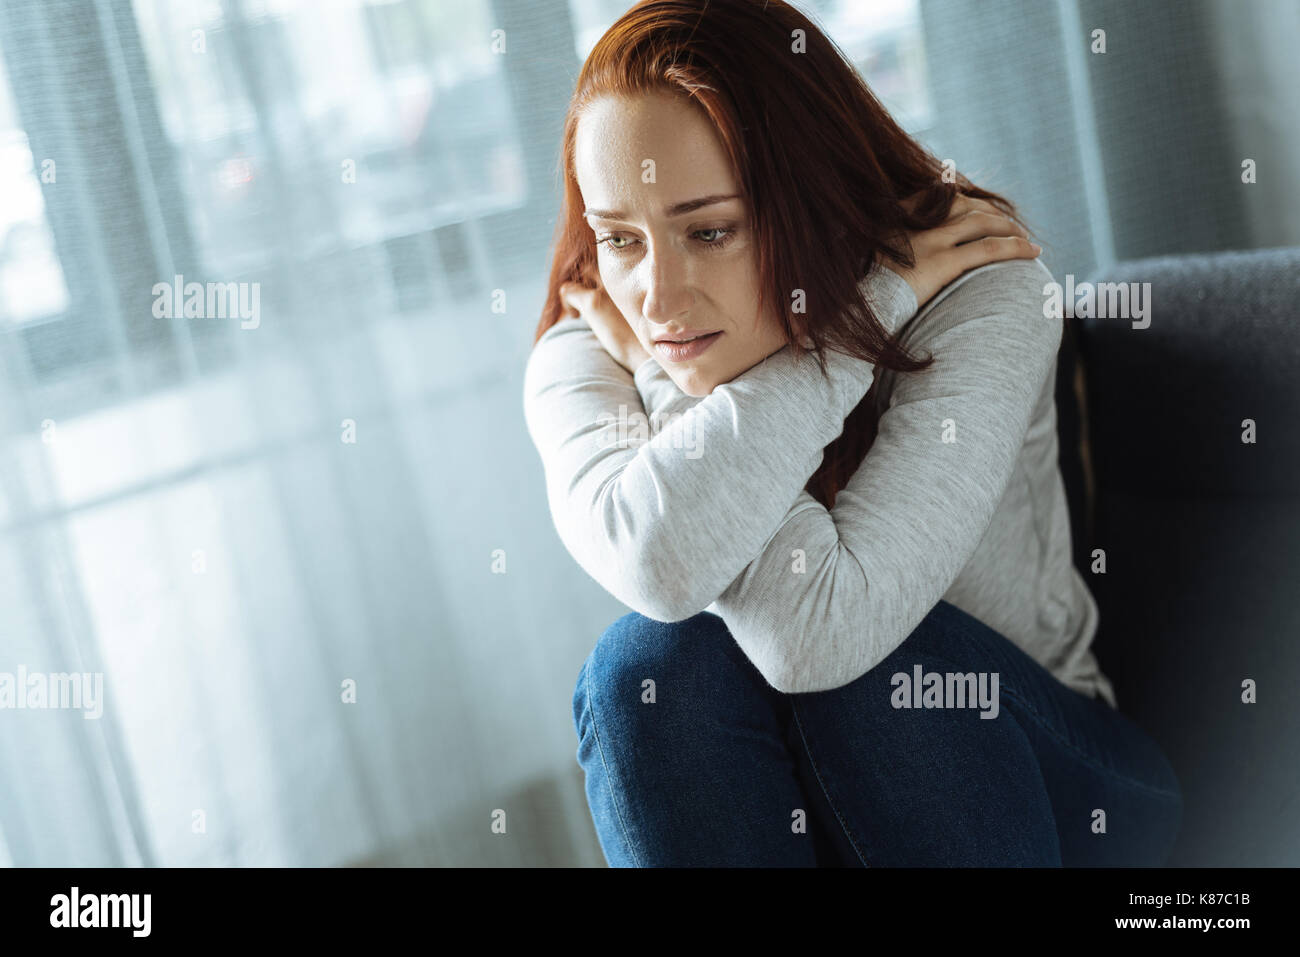 Cheerless sad woman feeling lonely - Stock Image